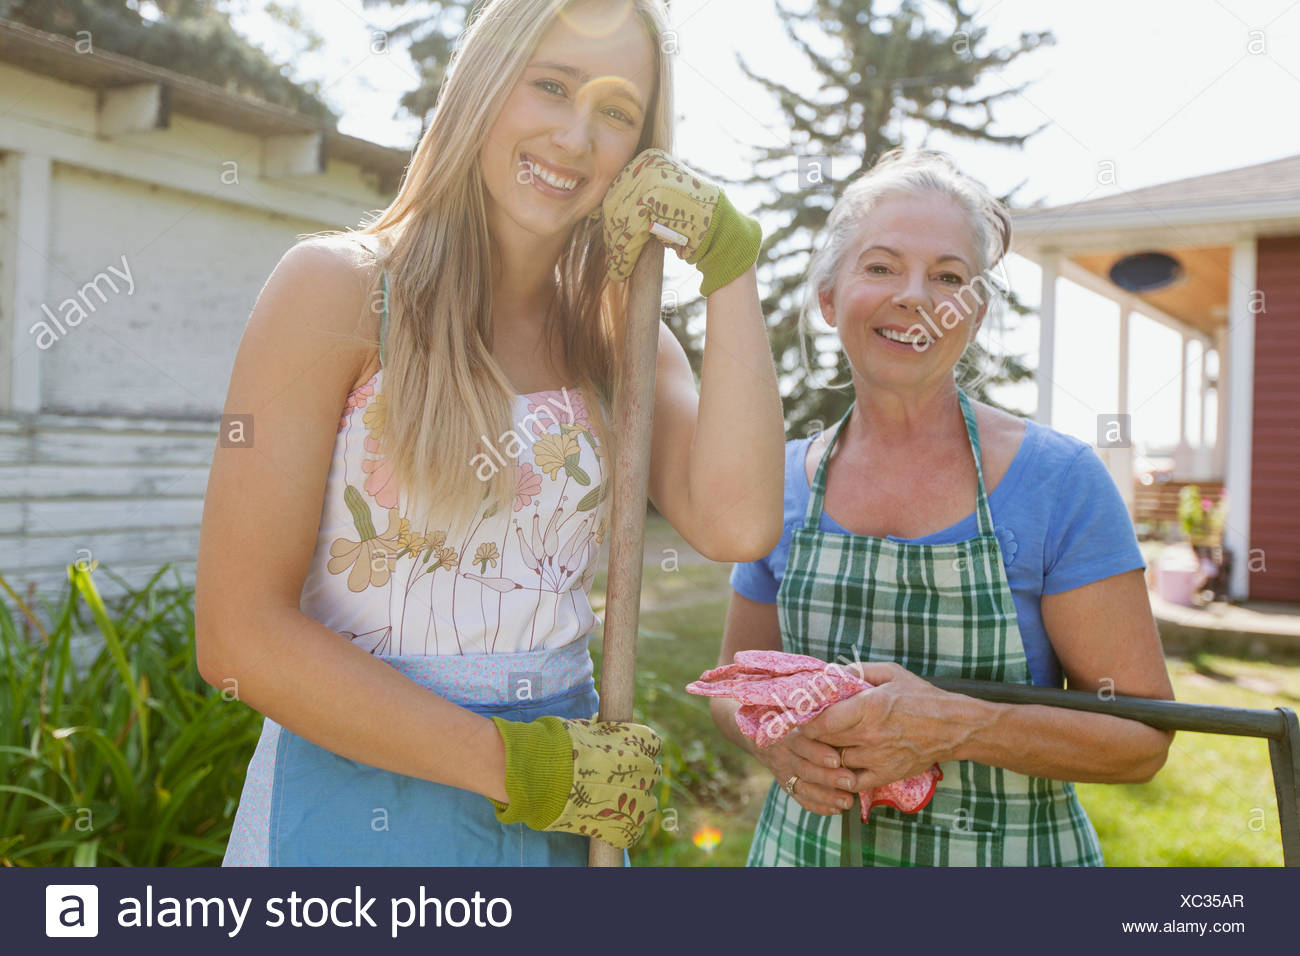 Mother and daughter outdoors doing yard work. Stock Photo